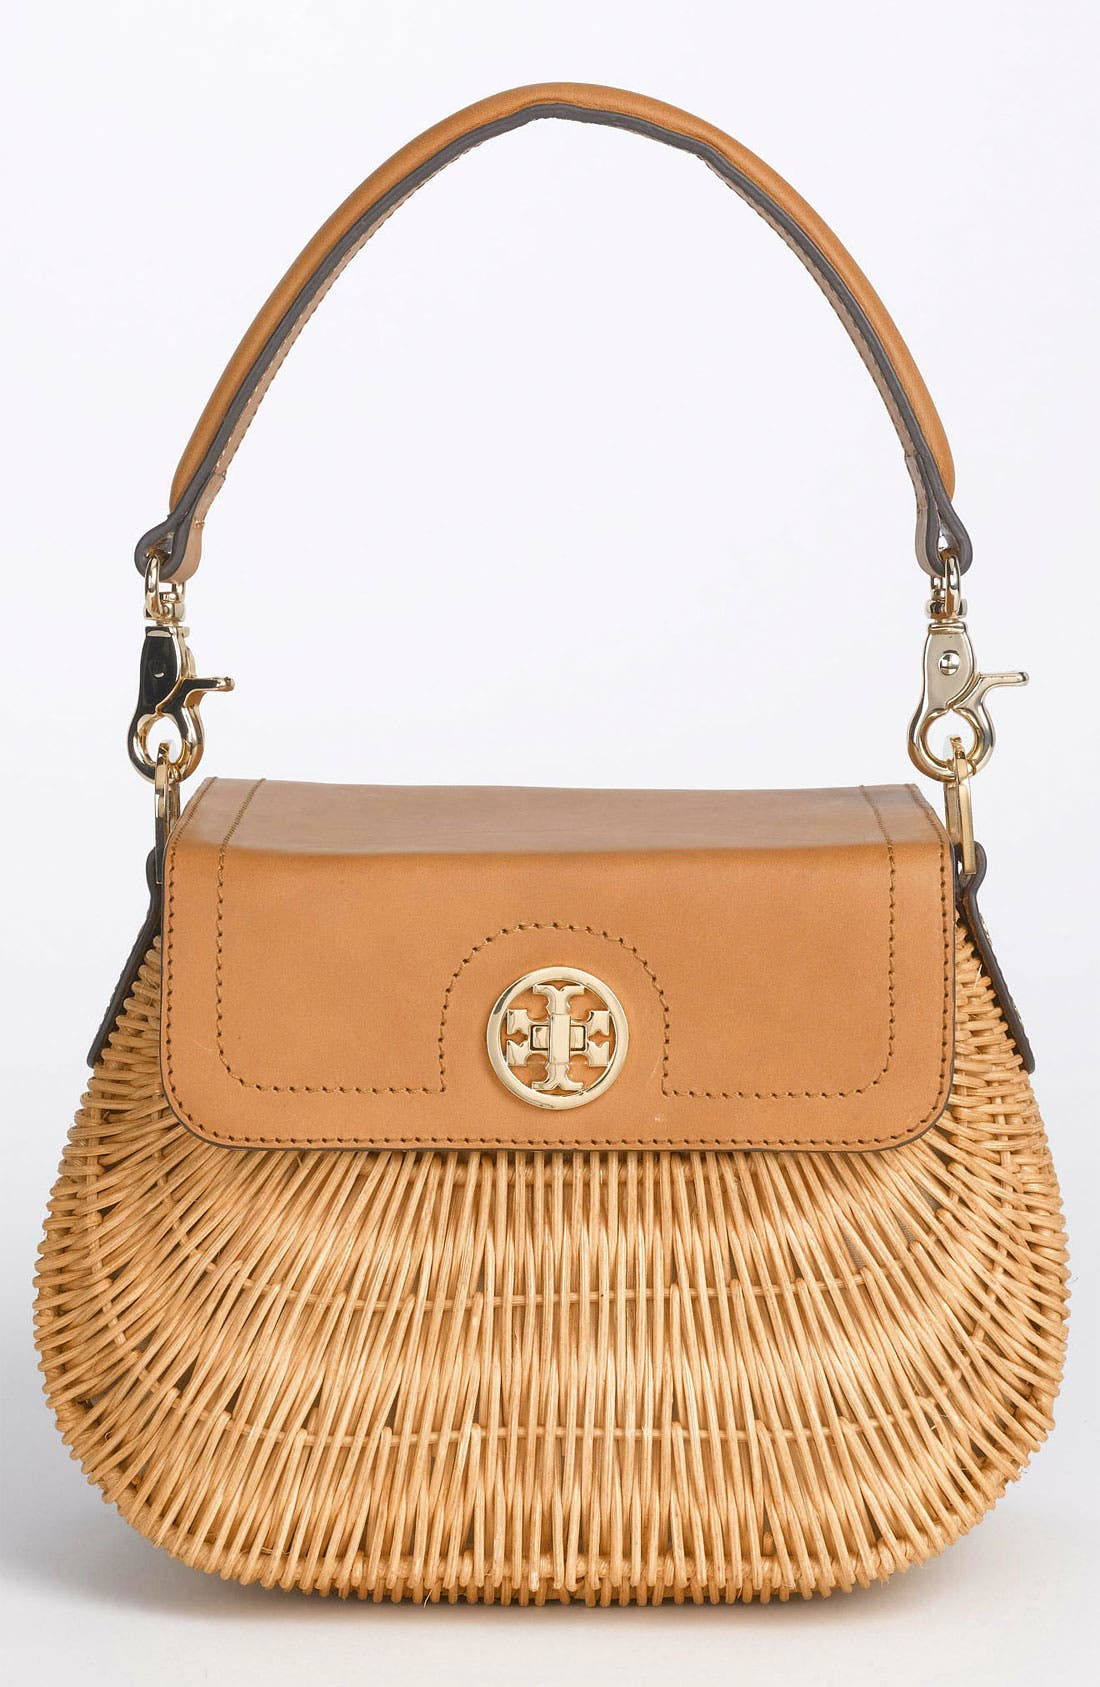 Alternate Image 1 Selected - Tory Burch 'Lac' Rattan Handbag